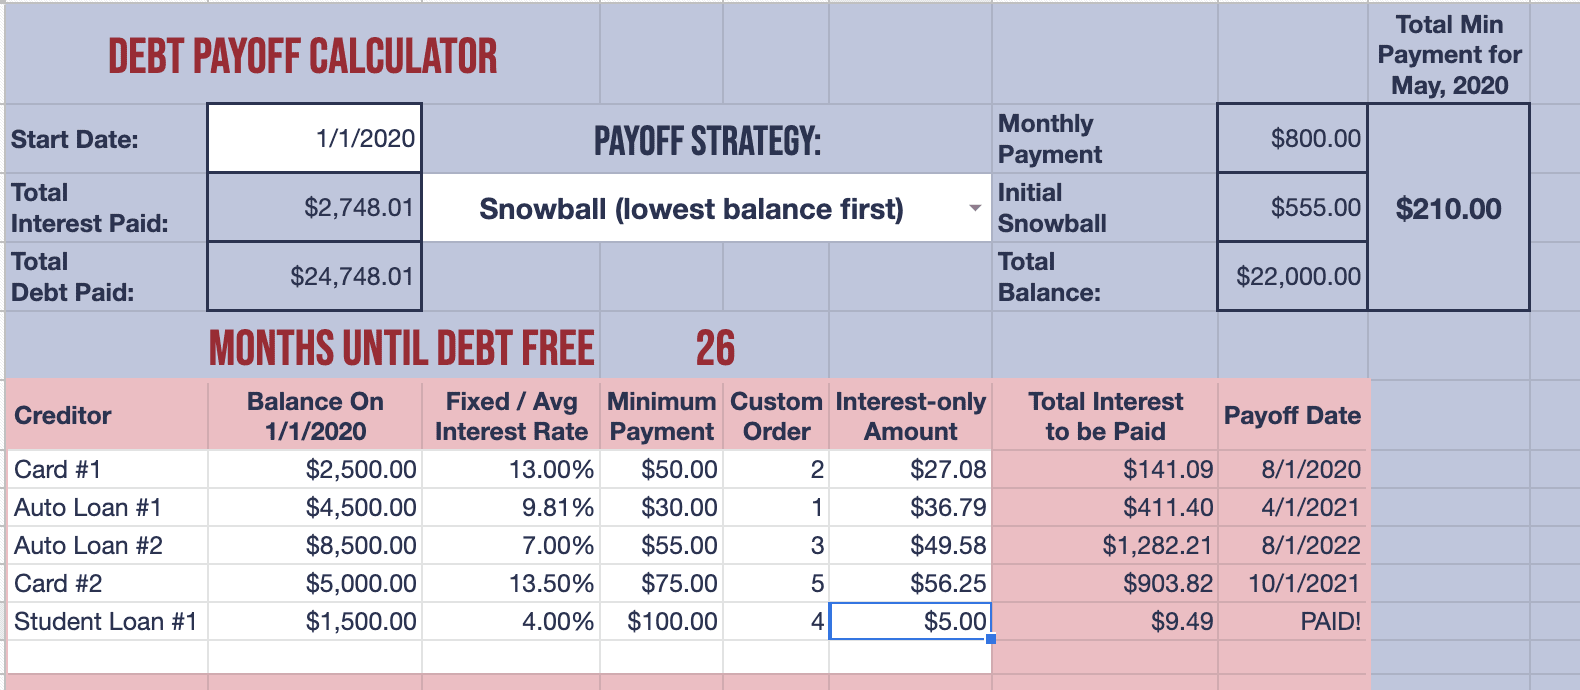 The Ways To Wealth's Debt Payoff Calculator